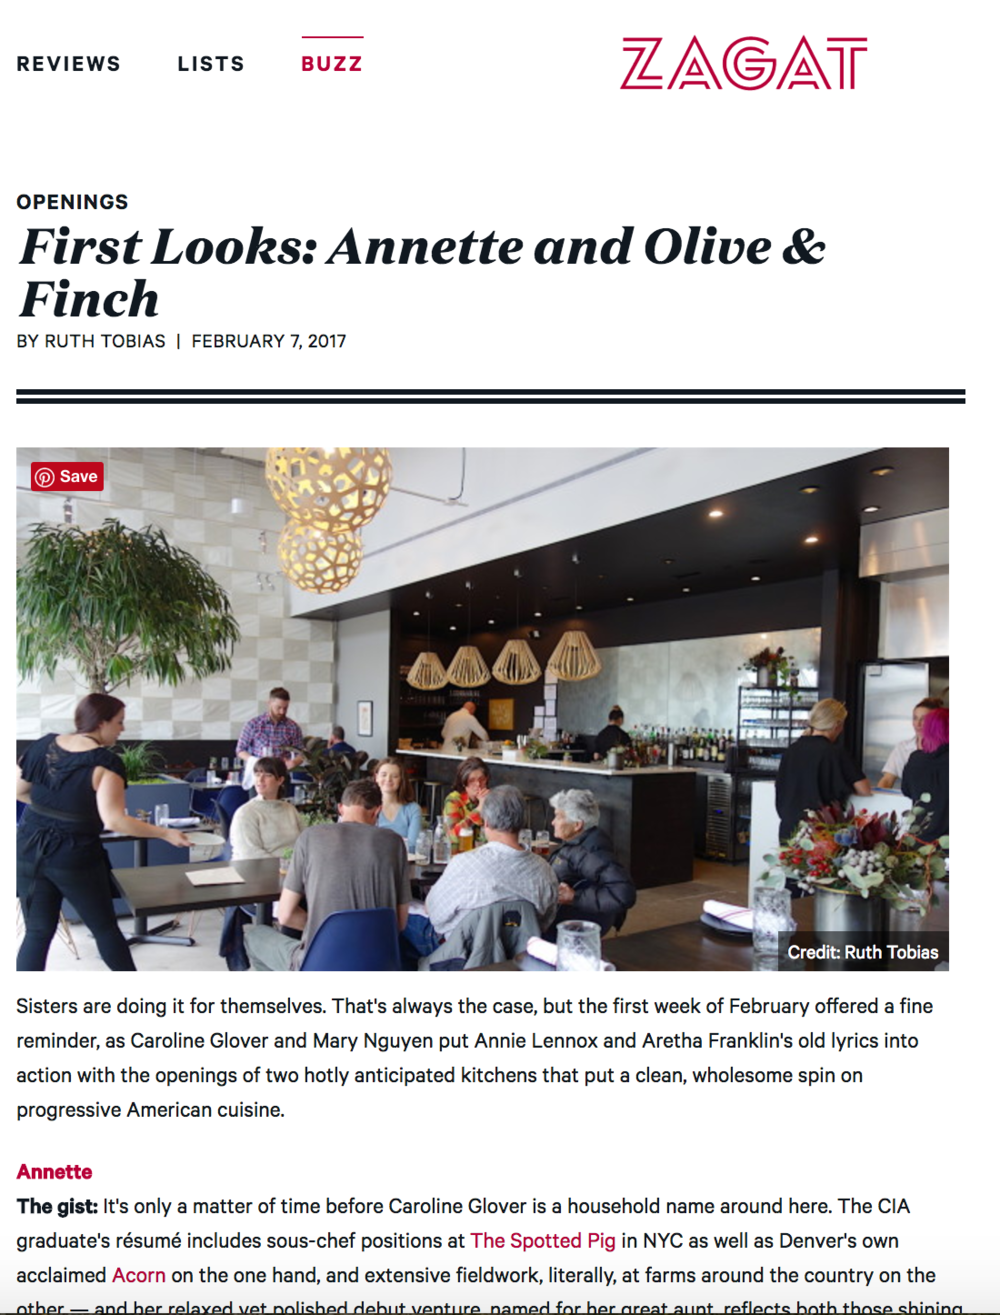 First Looks: Annette and Olive and Finch (Zagat)